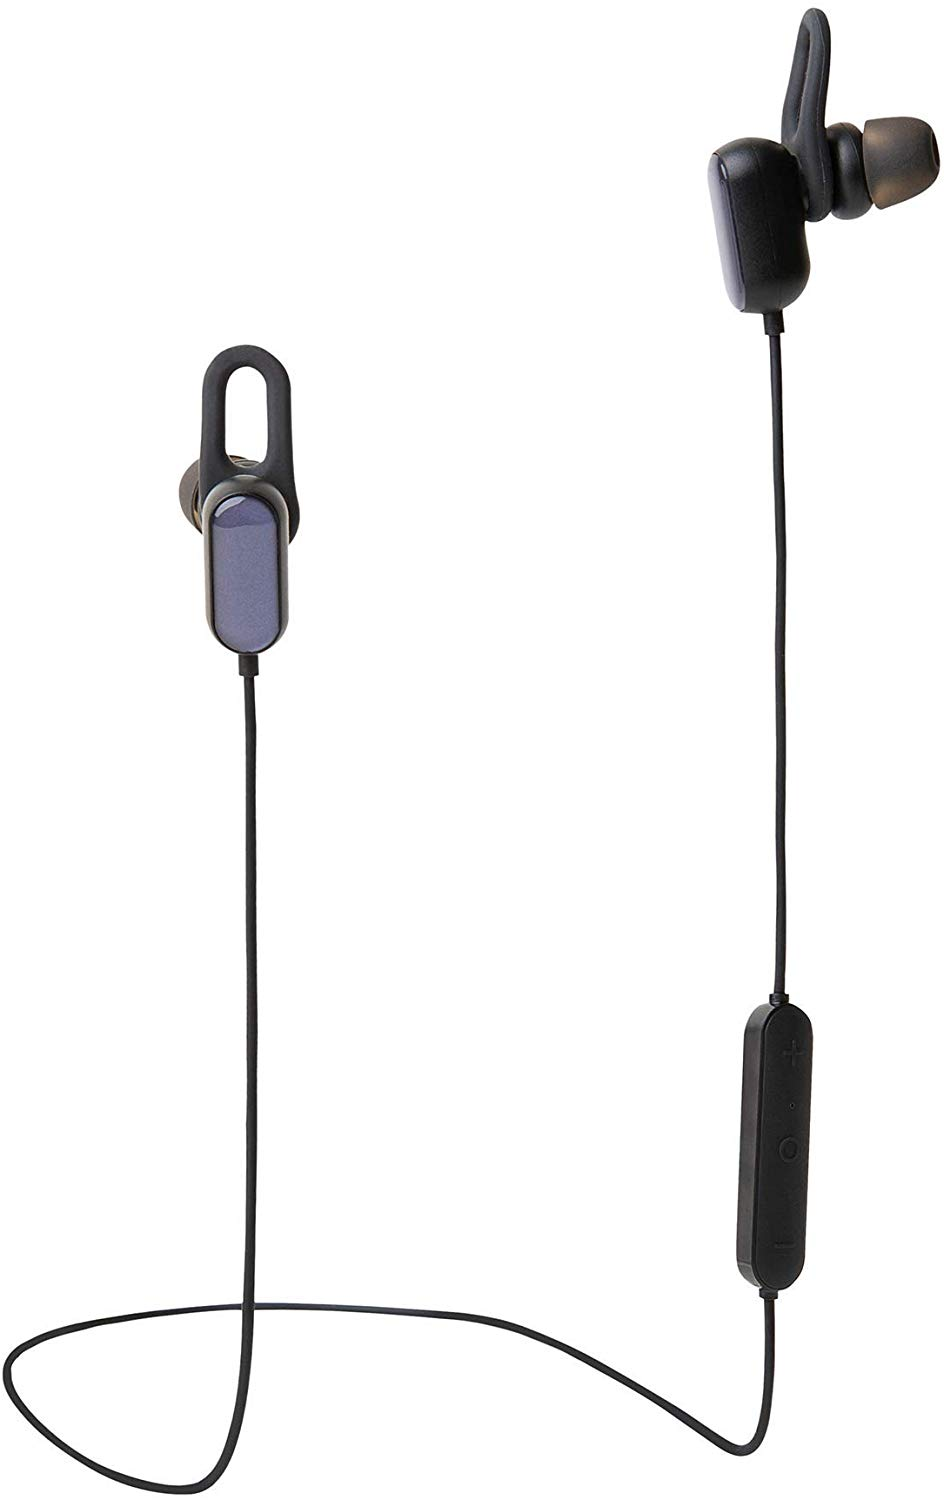 Rednix Headset Sports Bluetooth Earphones Basic Dynamic bass, Splash and Sweat Proof For All Bluetooth Device.